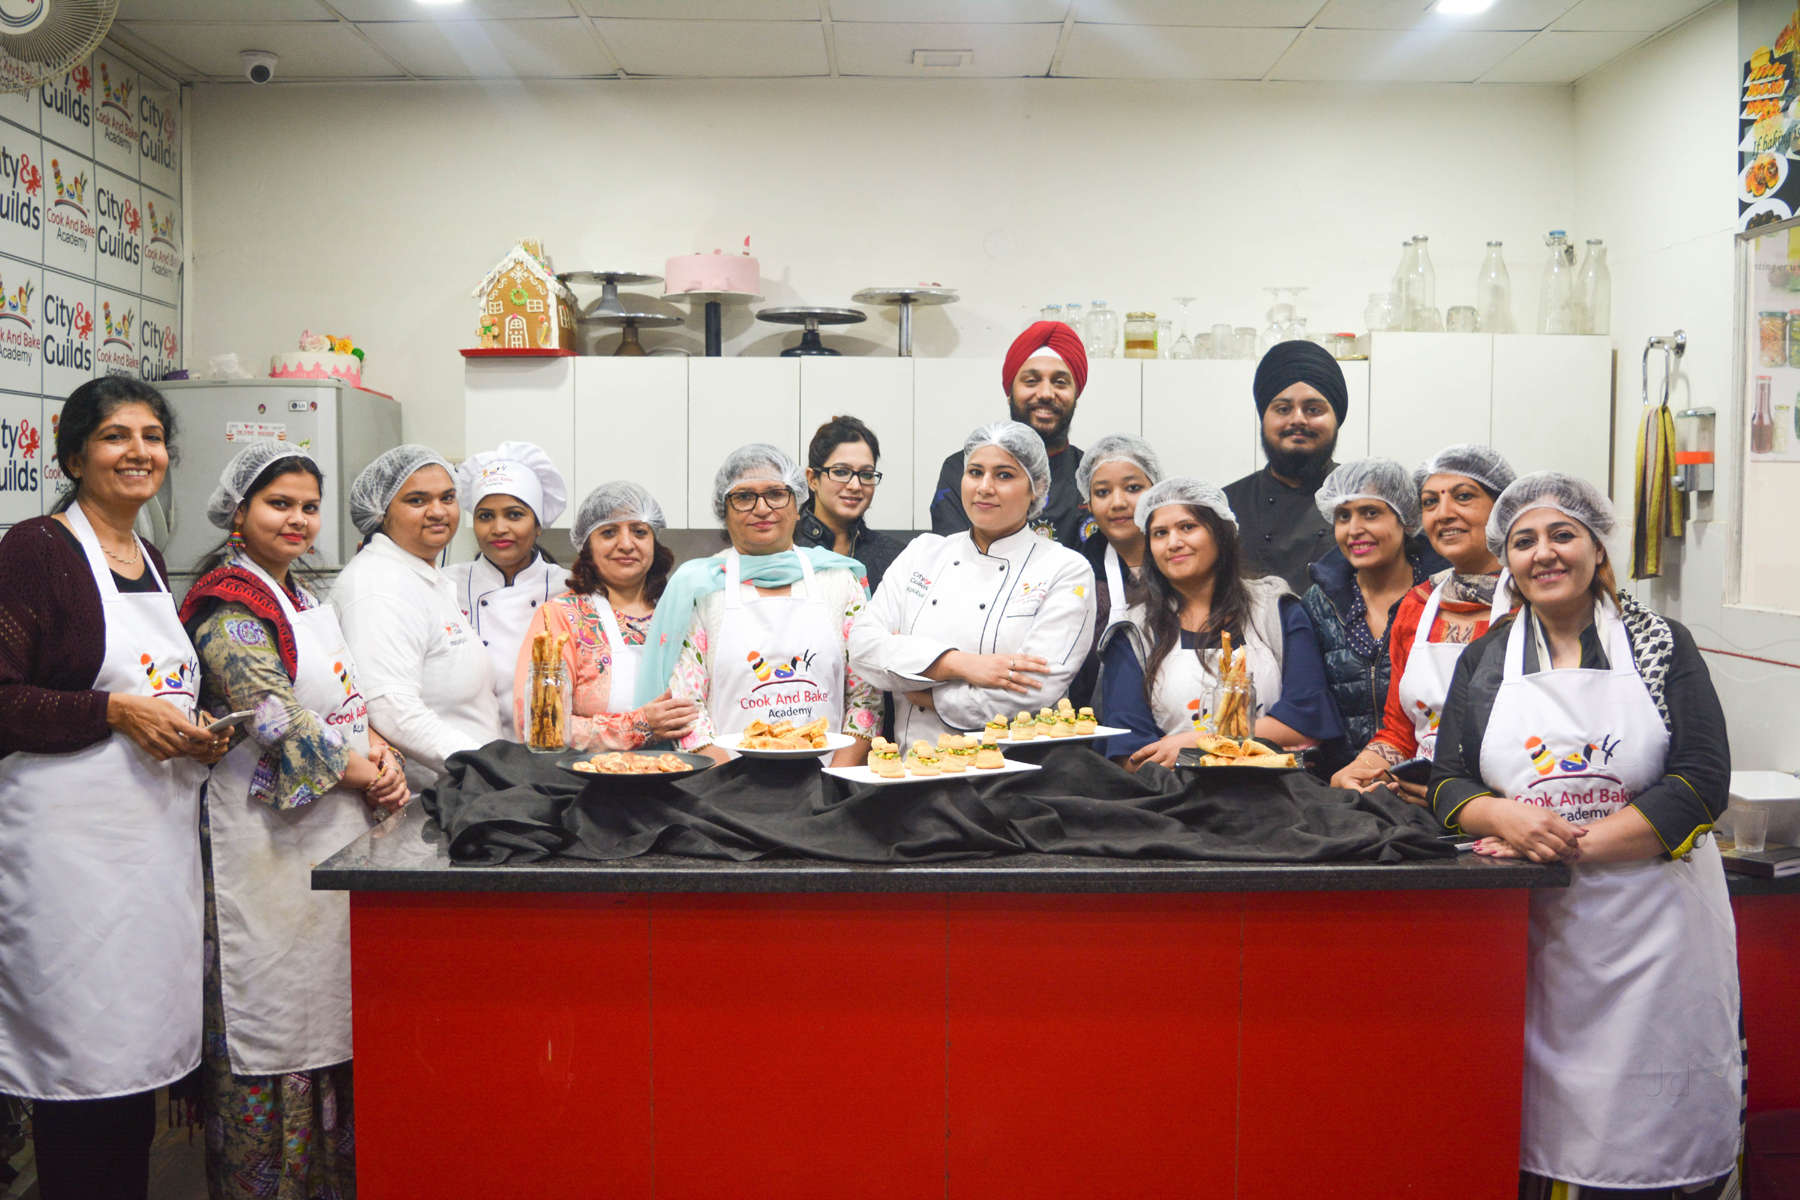 Cook and Bake Academy, New Delhi